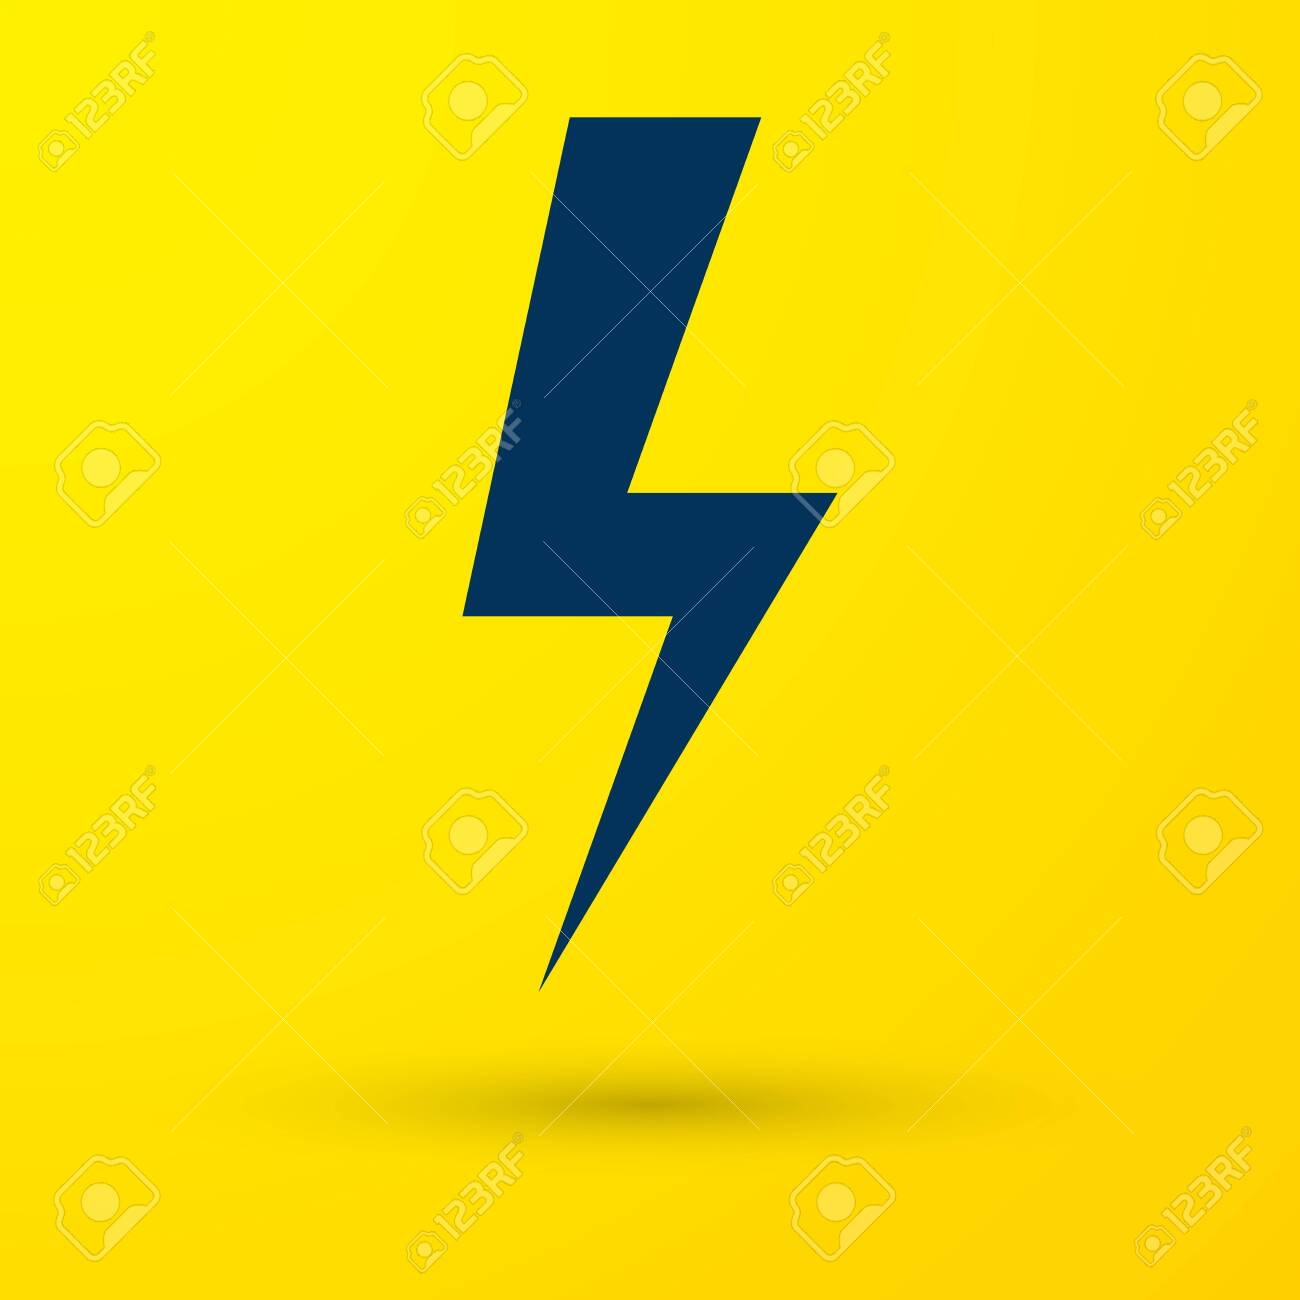 Blue Lightning Bolt Icon Isolated On Yellow Background Flash Royalty Free Cliparts Vectors And Stock Illustration Image 124297304